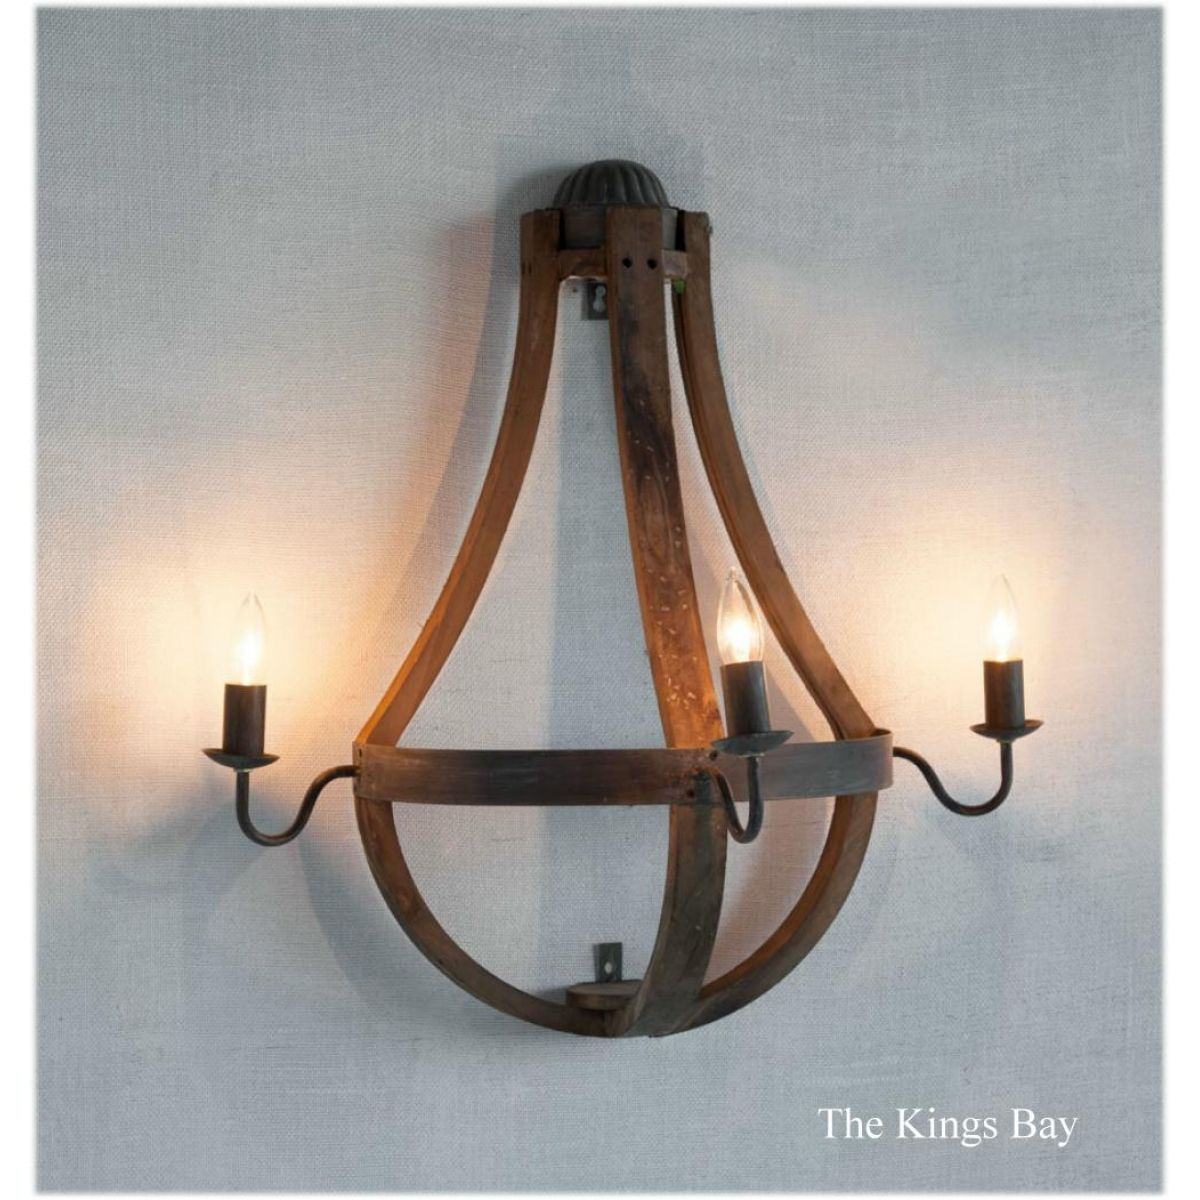 Natural Aged Wood And Metal Wall Sconce Large Light Fixture Rustic Lodge Style